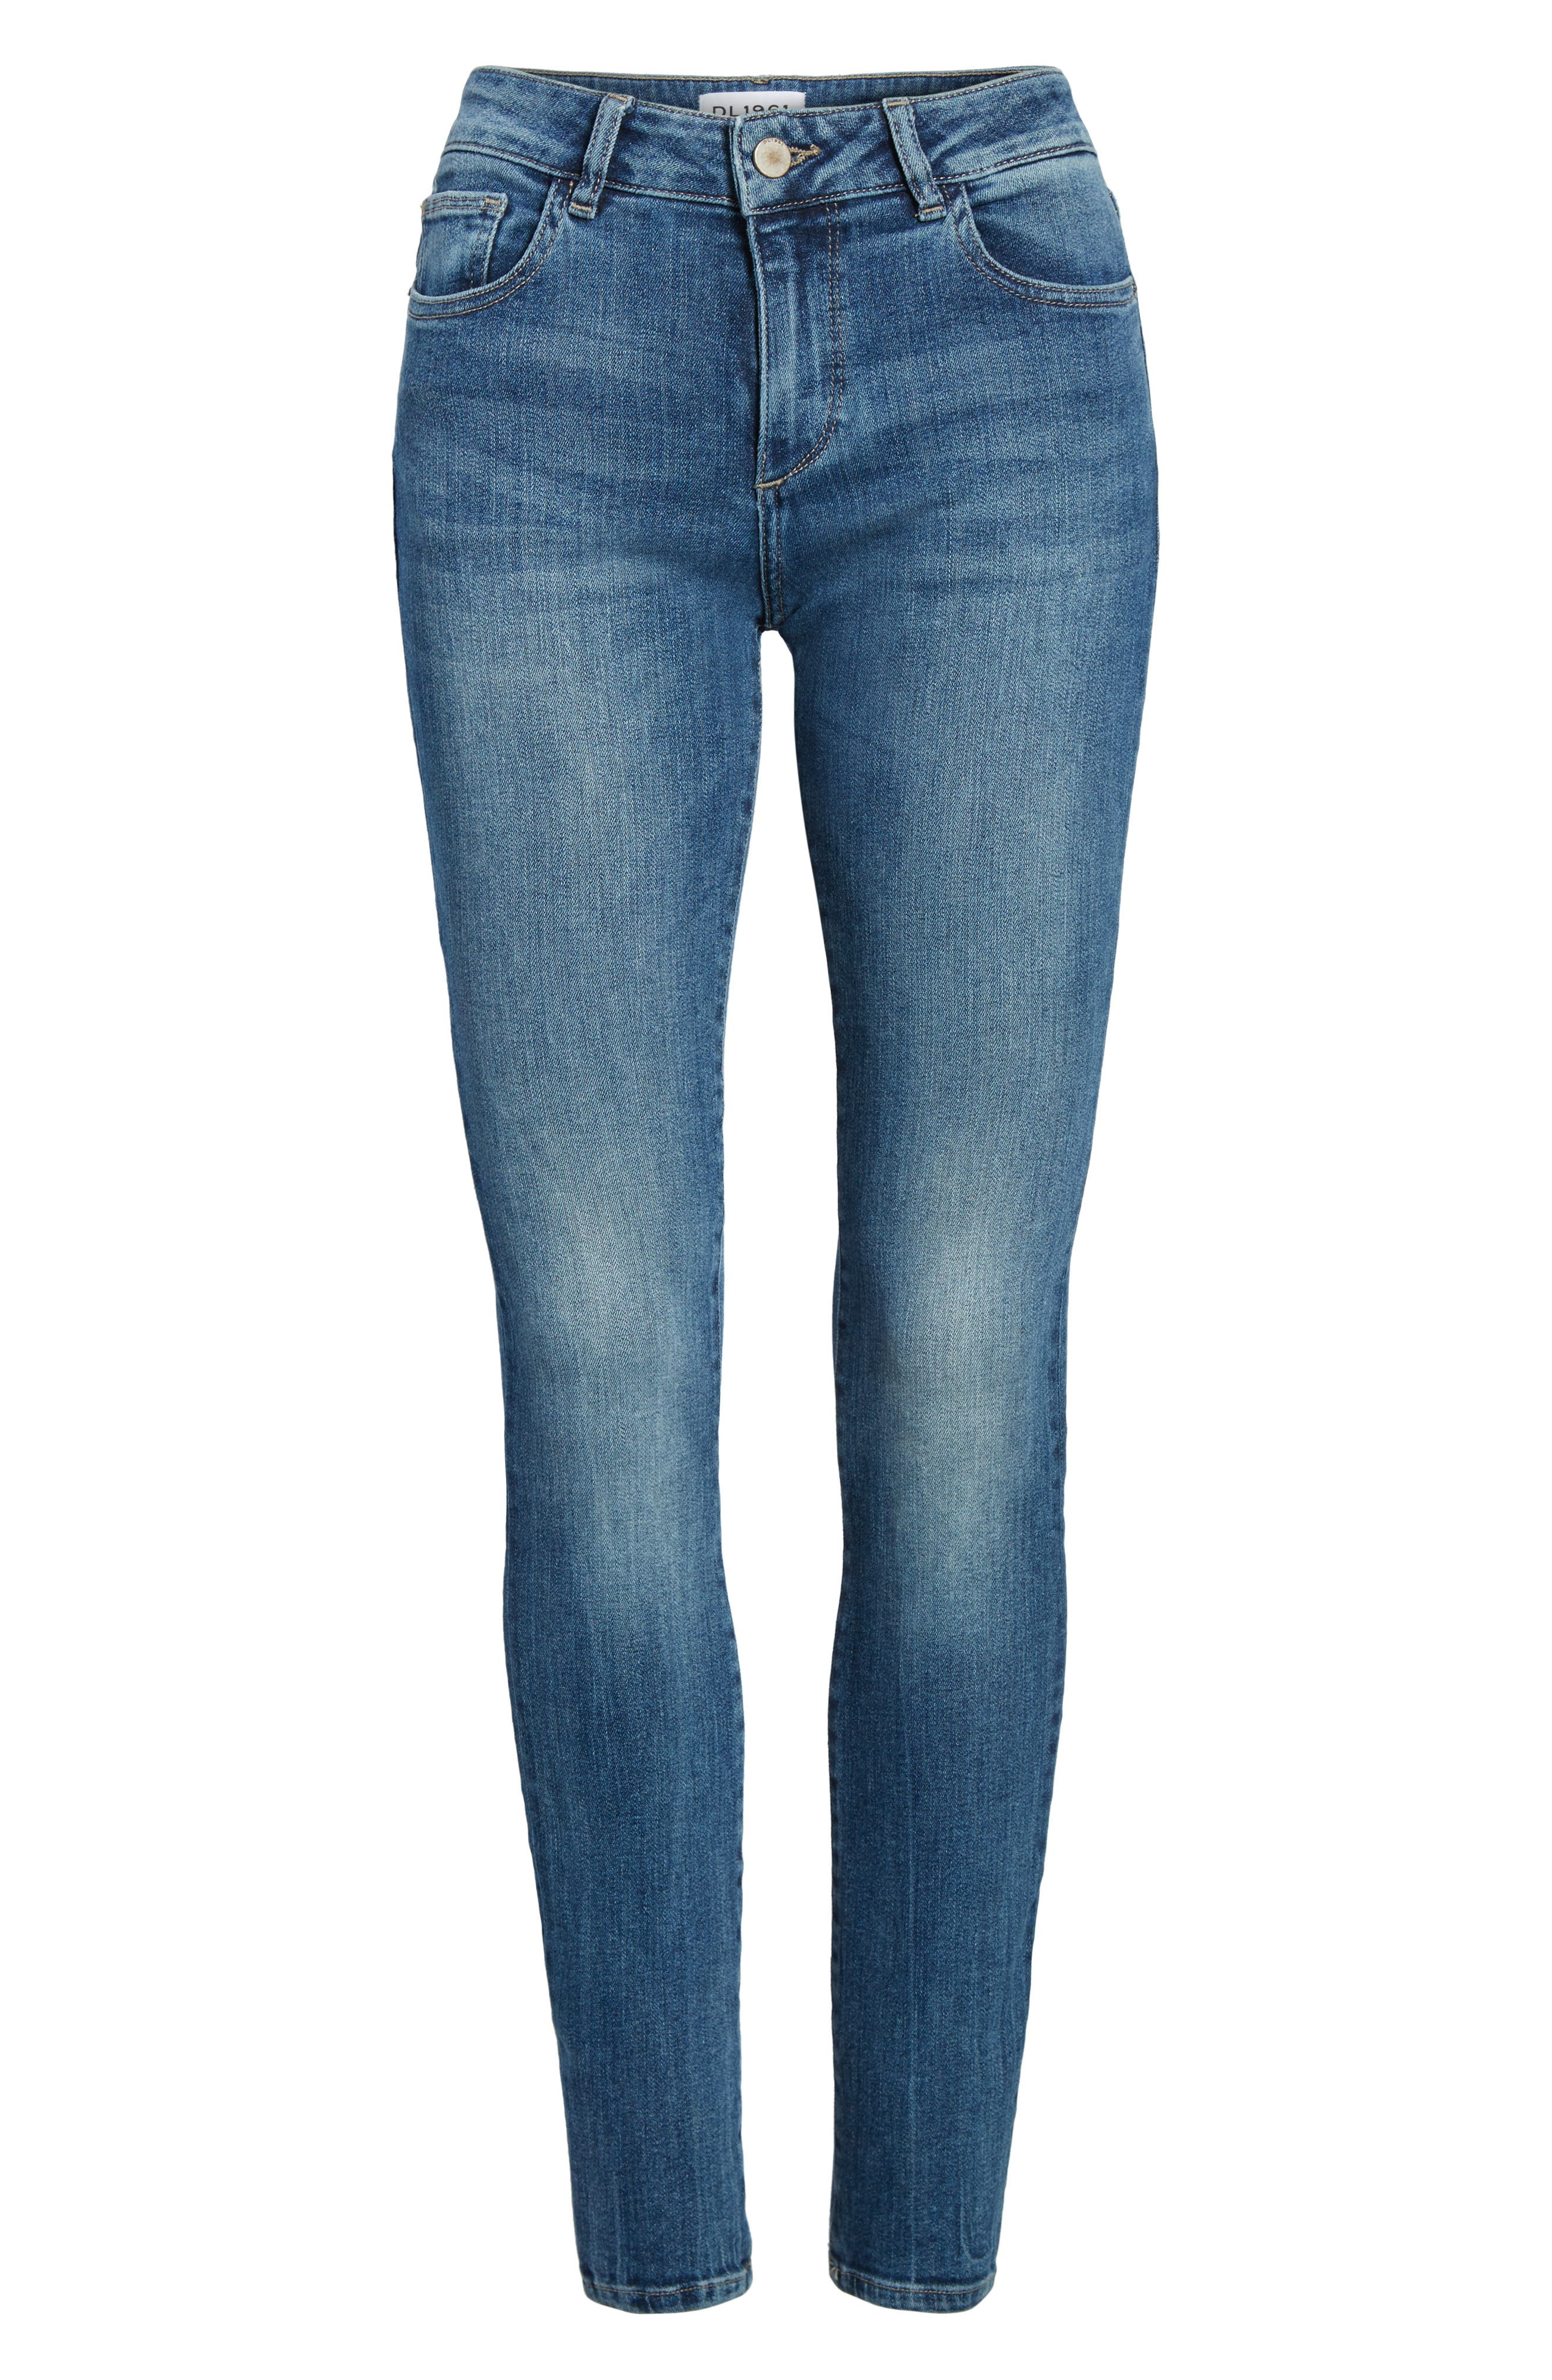 Florence Instasculpt Skinny Jeans,                             Alternate thumbnail 7, color,                             Wells